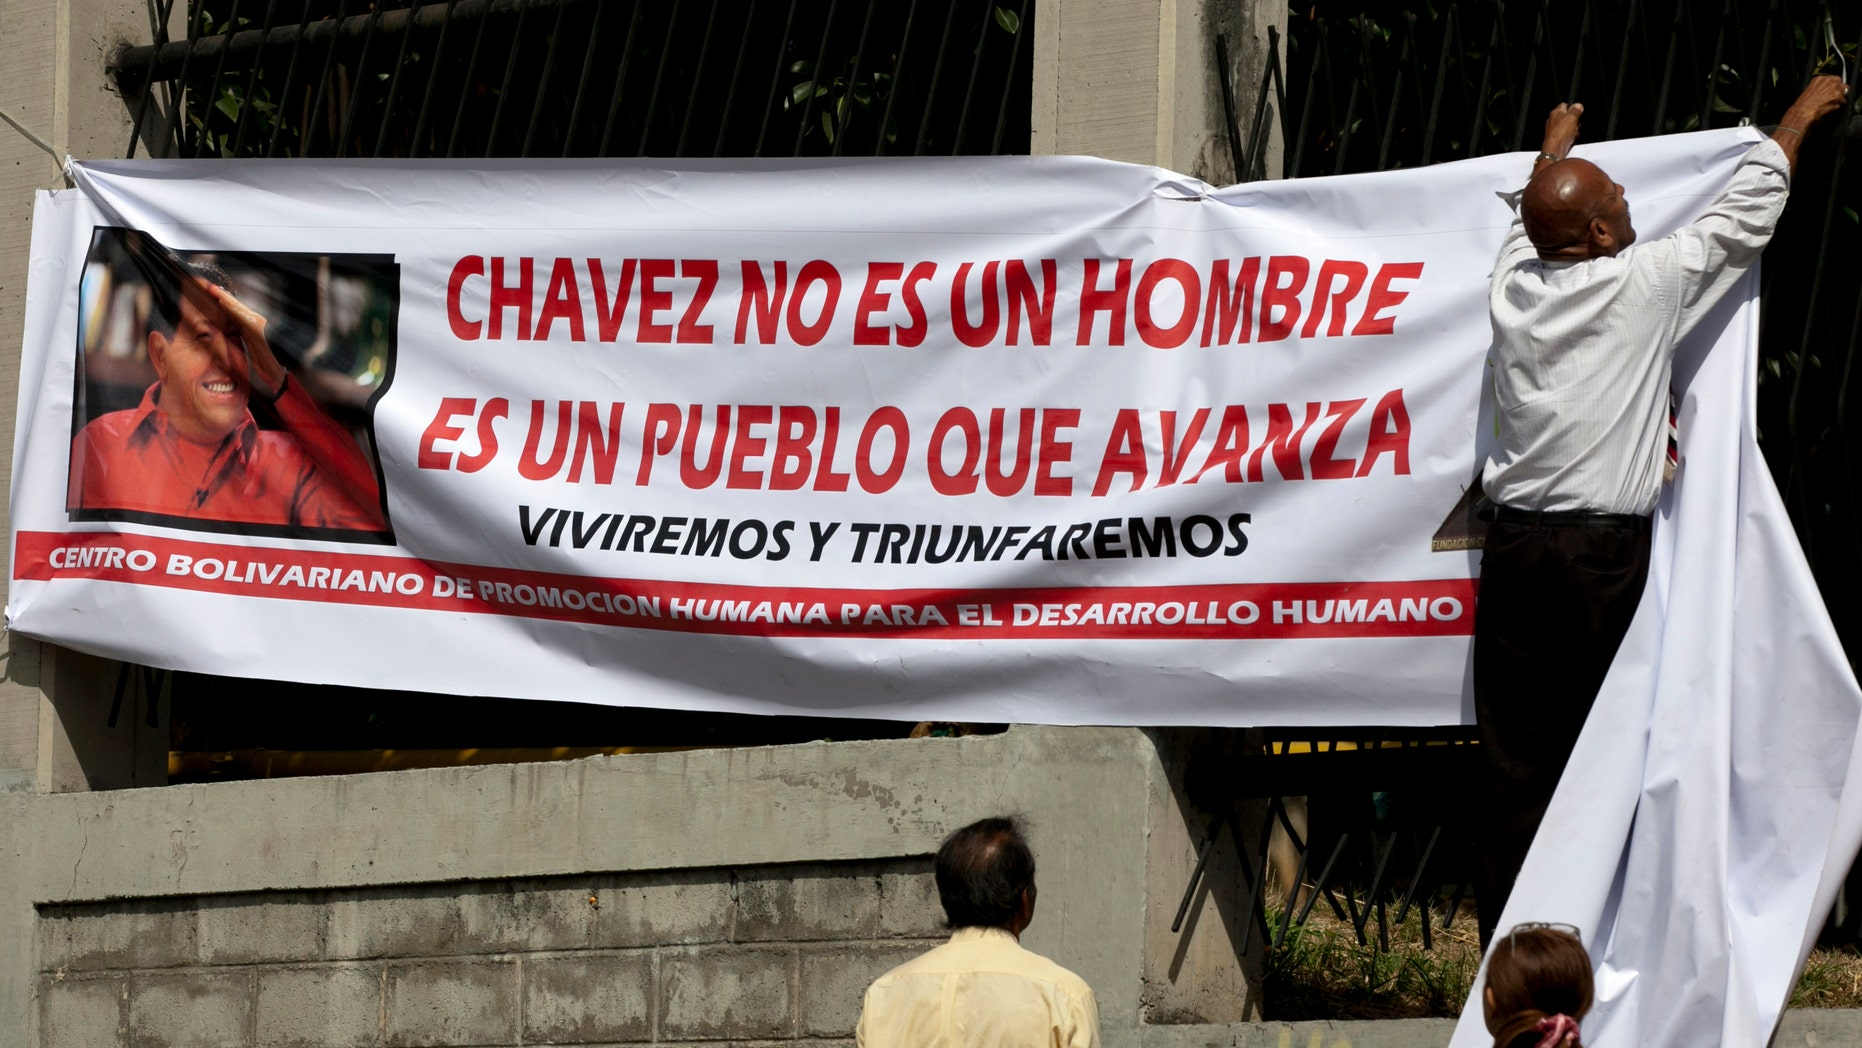 A man hangs a banner showing a picture of Venezuela's President Hugo Chavez outside the Military Hospital, where Chavez is allegedly receiving treatment, in Caracas, Venezuela, Thursday, Feb. 21, 2013. (AP Photo/Ariana Cubillos)